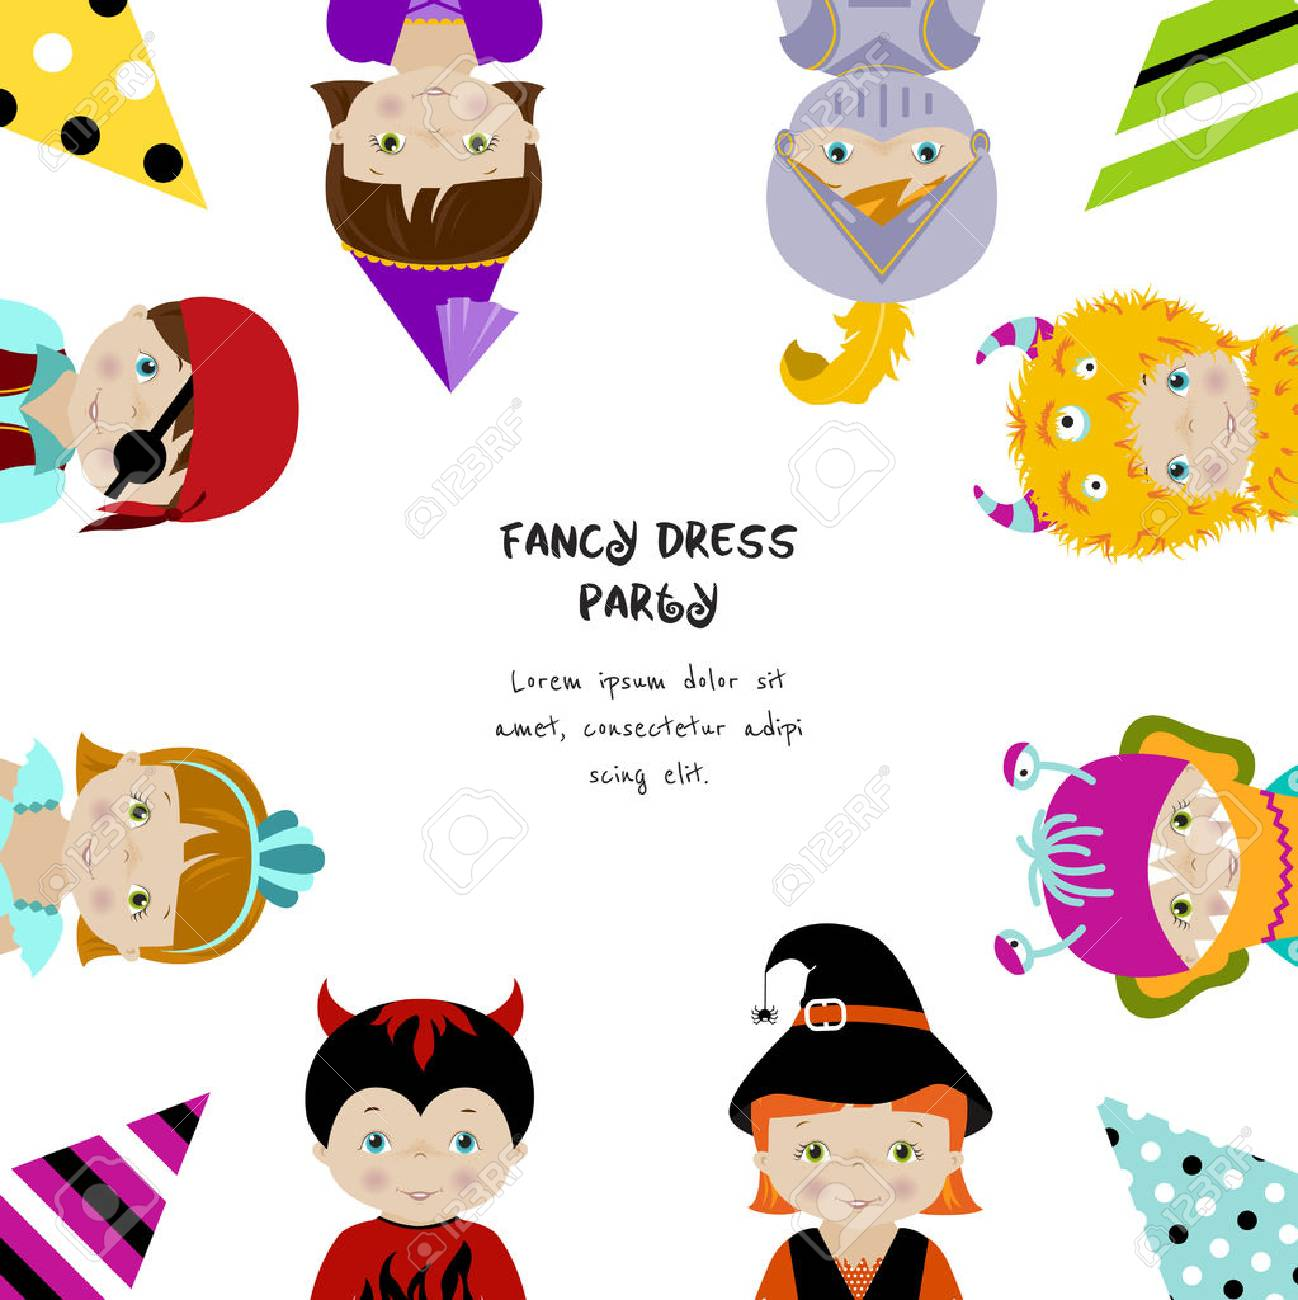 Square Background For Fancy Dress Party Invitation With Cute ...